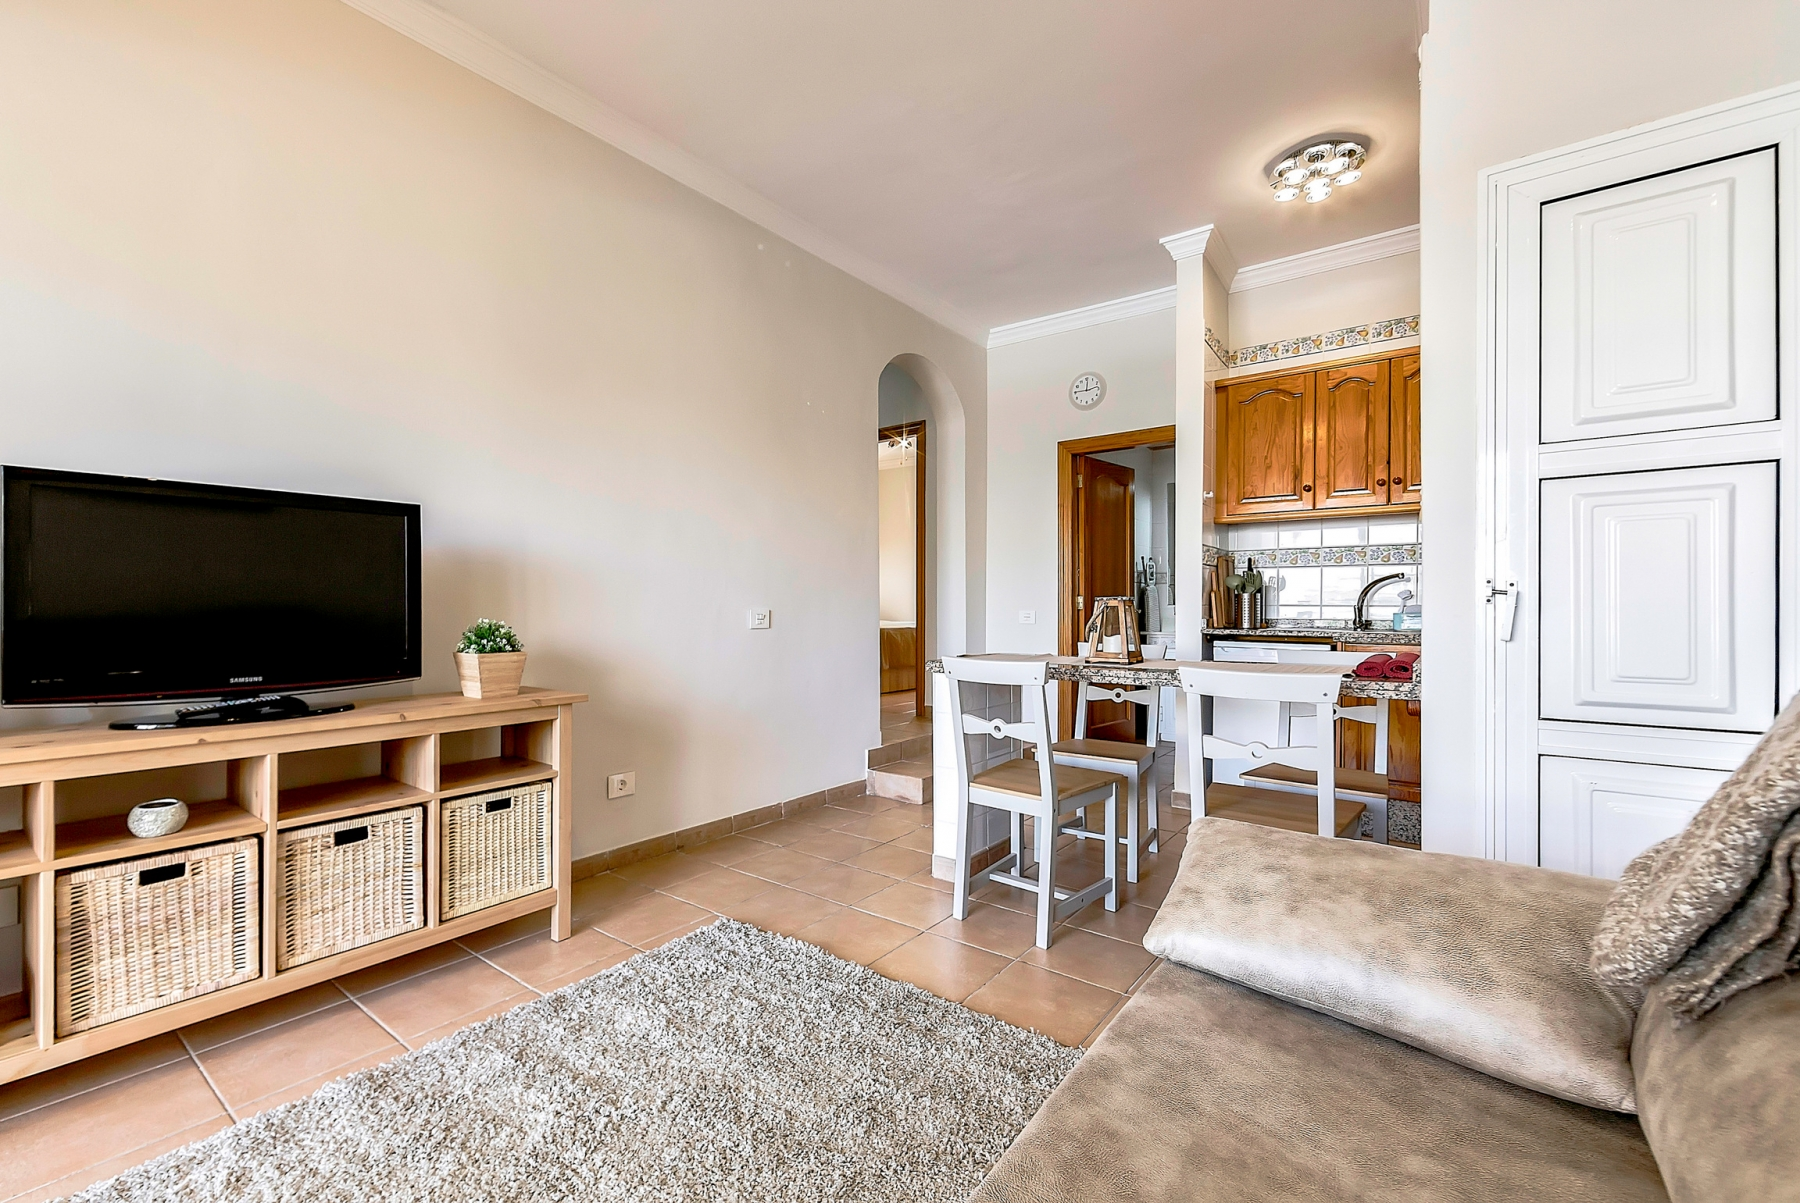 Properties for Sale in Tenerife, Canary Islands, Spain | SylkWayStar Real Estate. 1 bedroom apartment Yucca Park. Image-22589